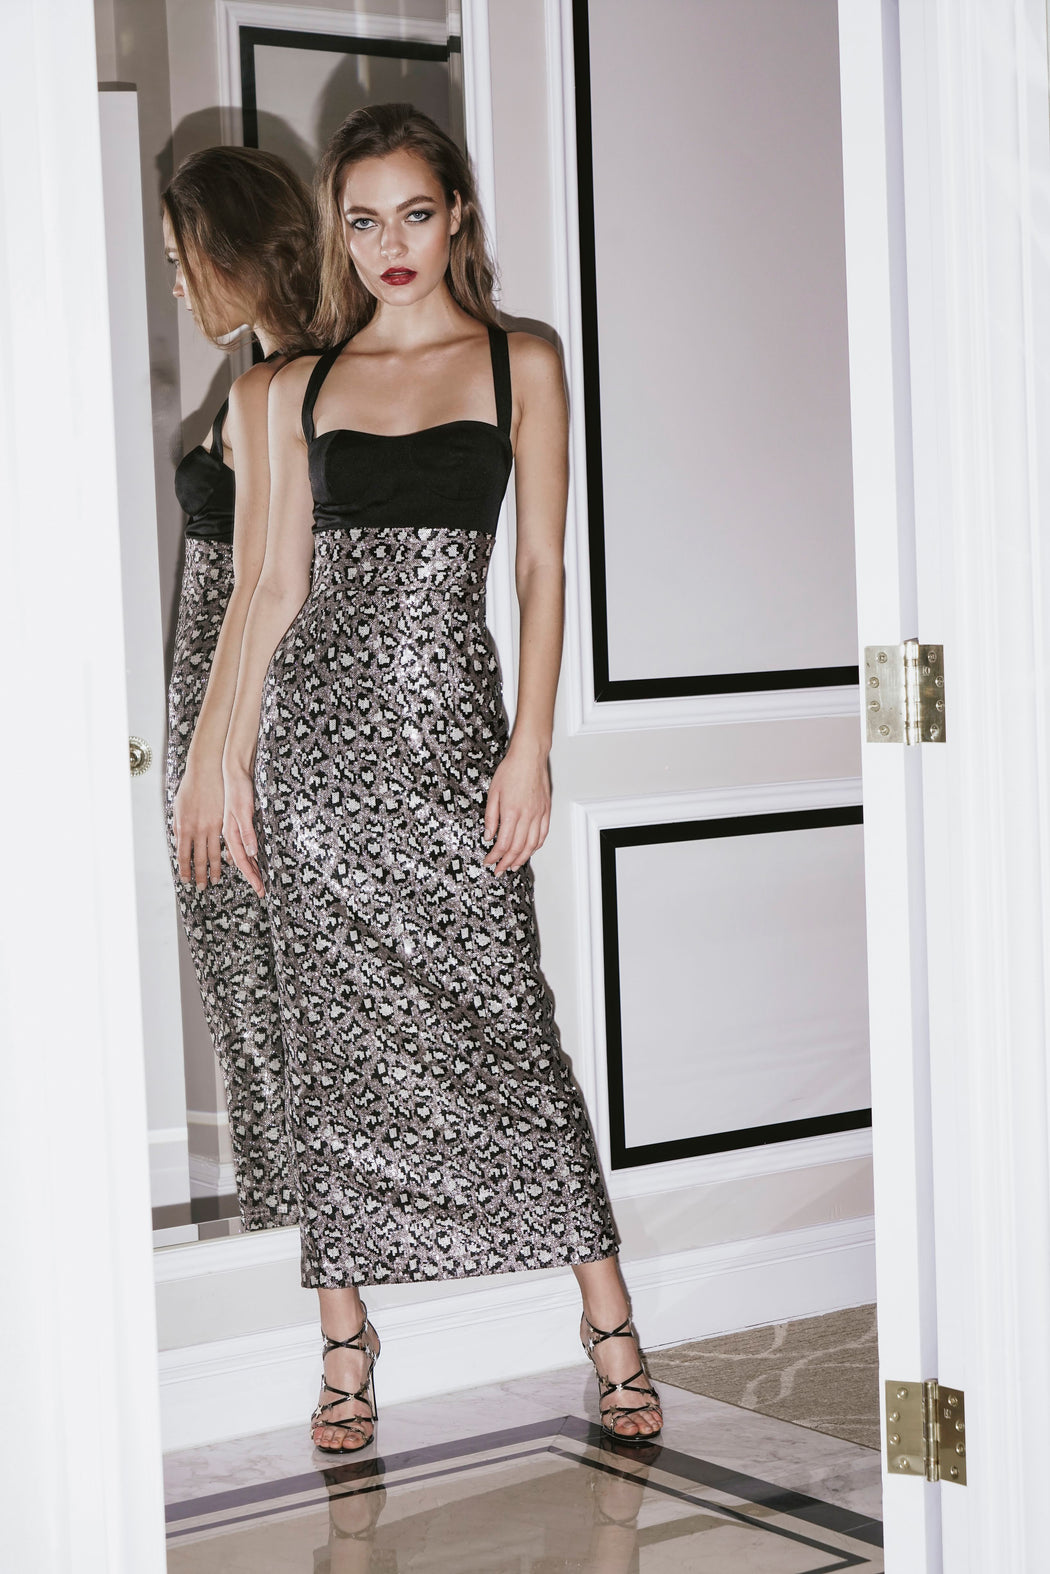 Shannon Leopard Sequin Pencil Dress